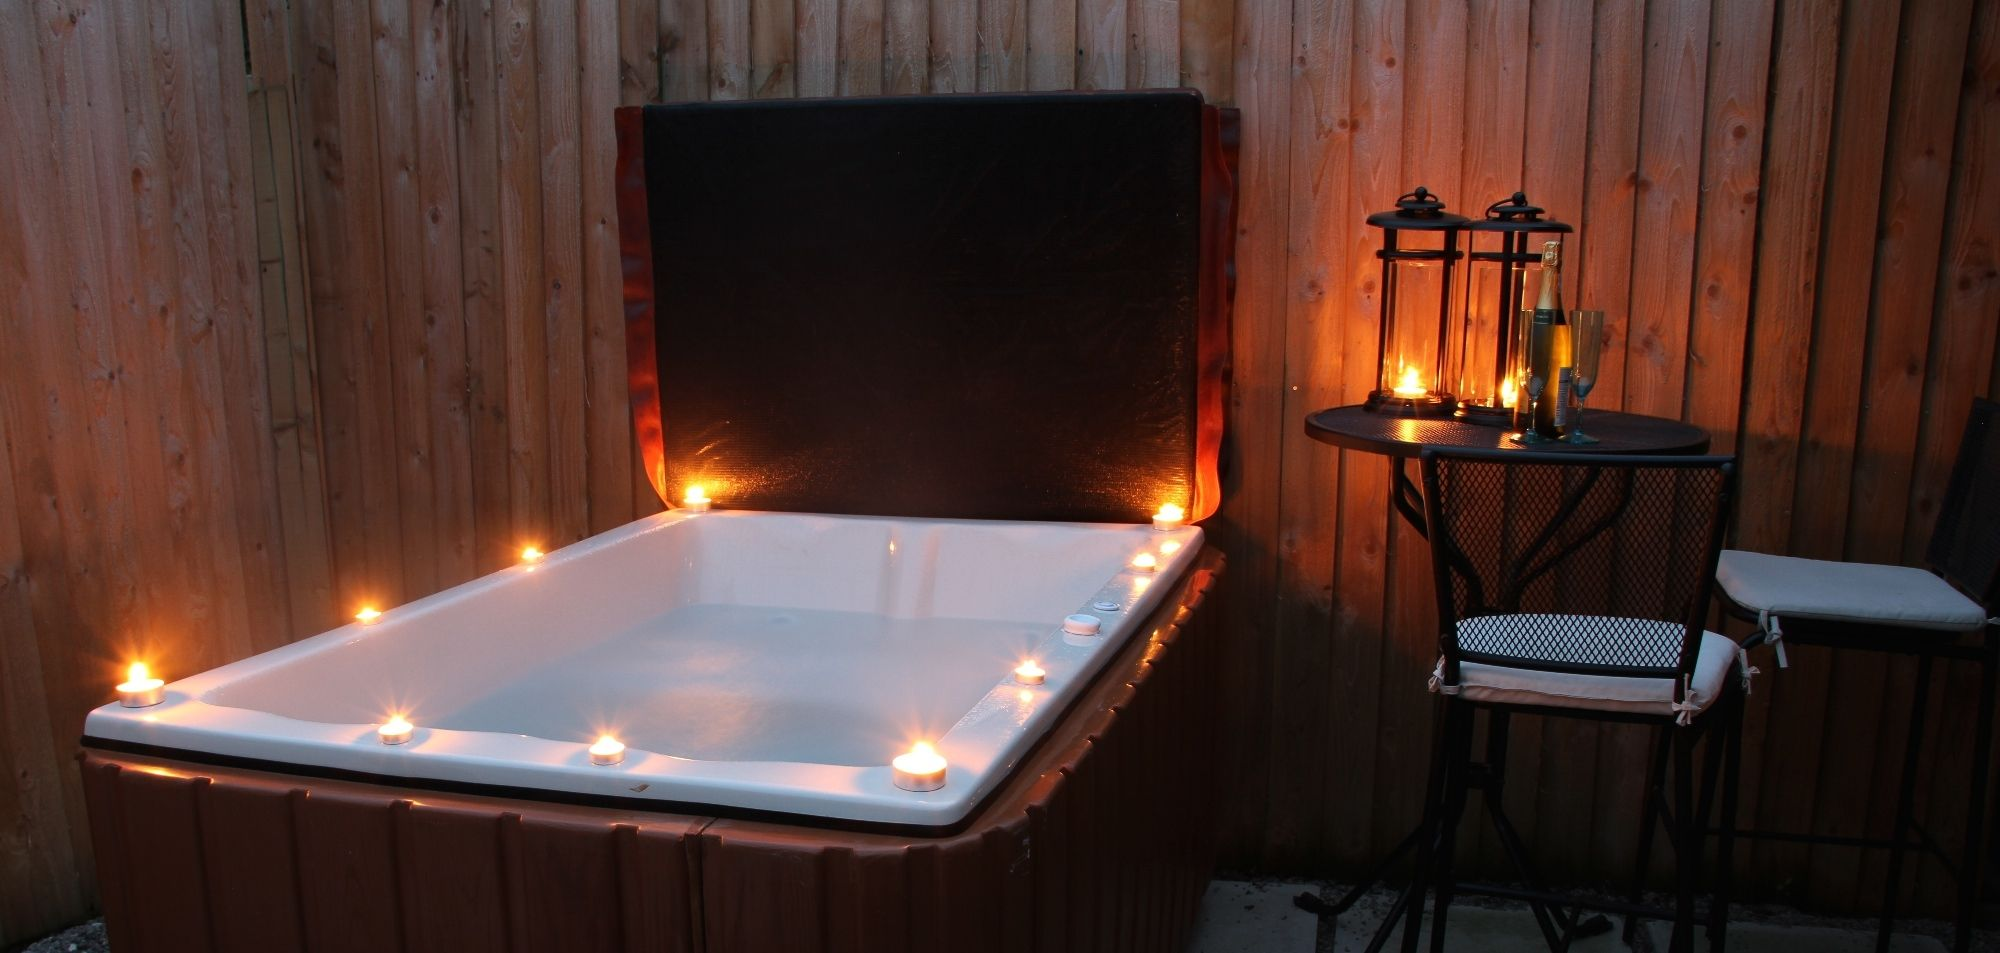 Hot Tub Safari At Pentre Mawr Room For Romance Luxury Hotel Weekend S Hotelscountry